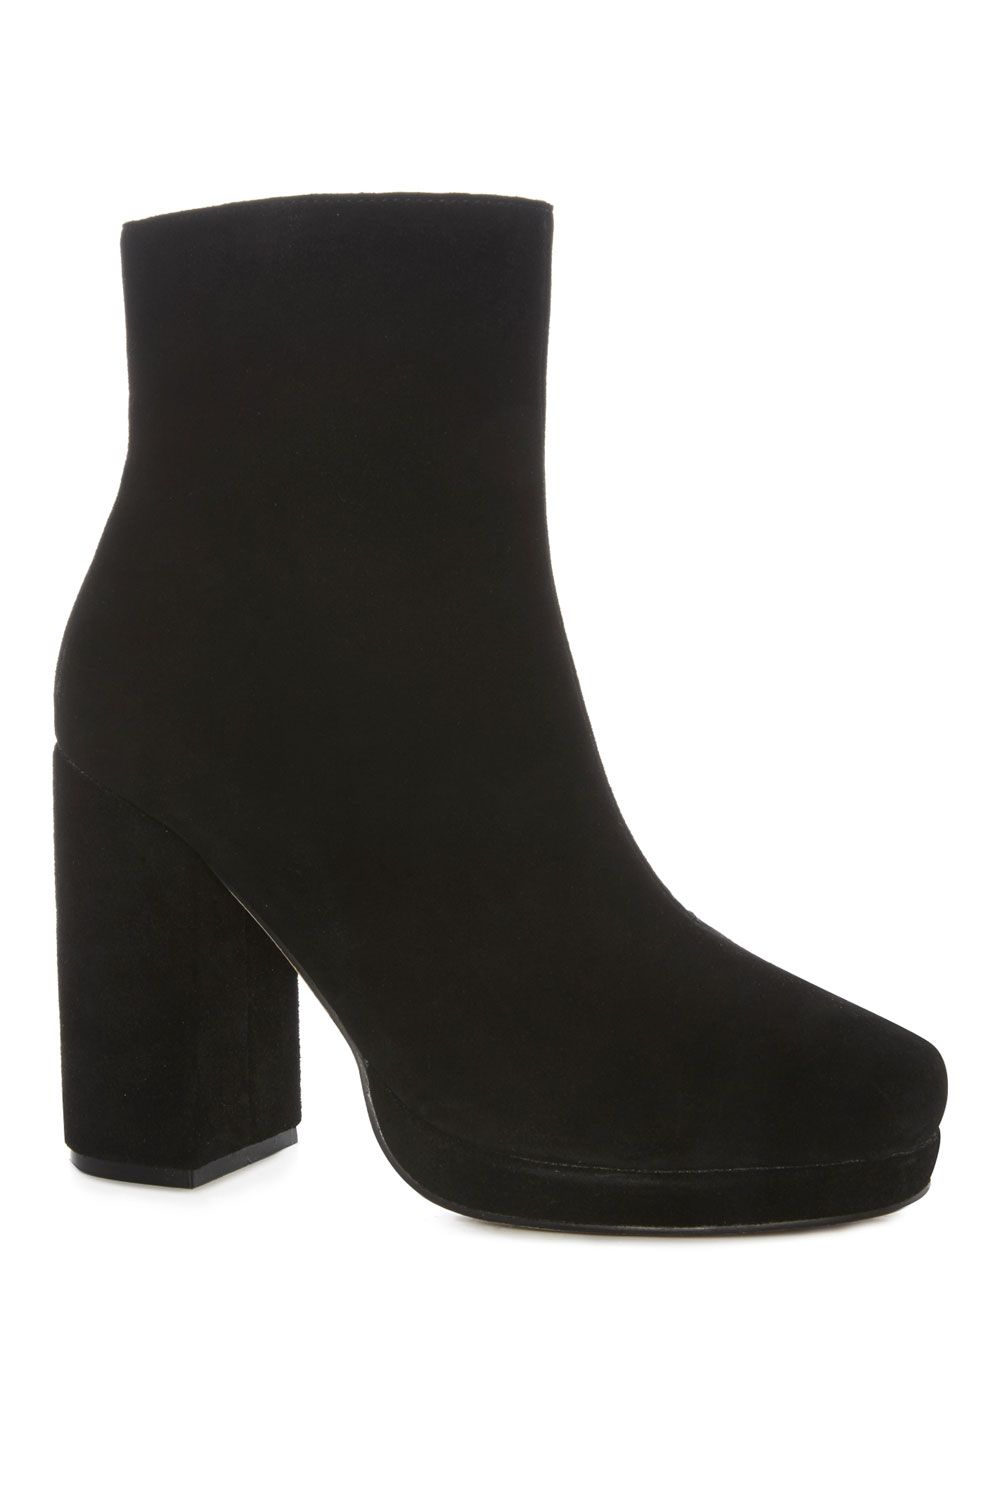 c0a90124ad7 The Best Primark Boots To Shop Now | Fashion Daahling | Primark ...